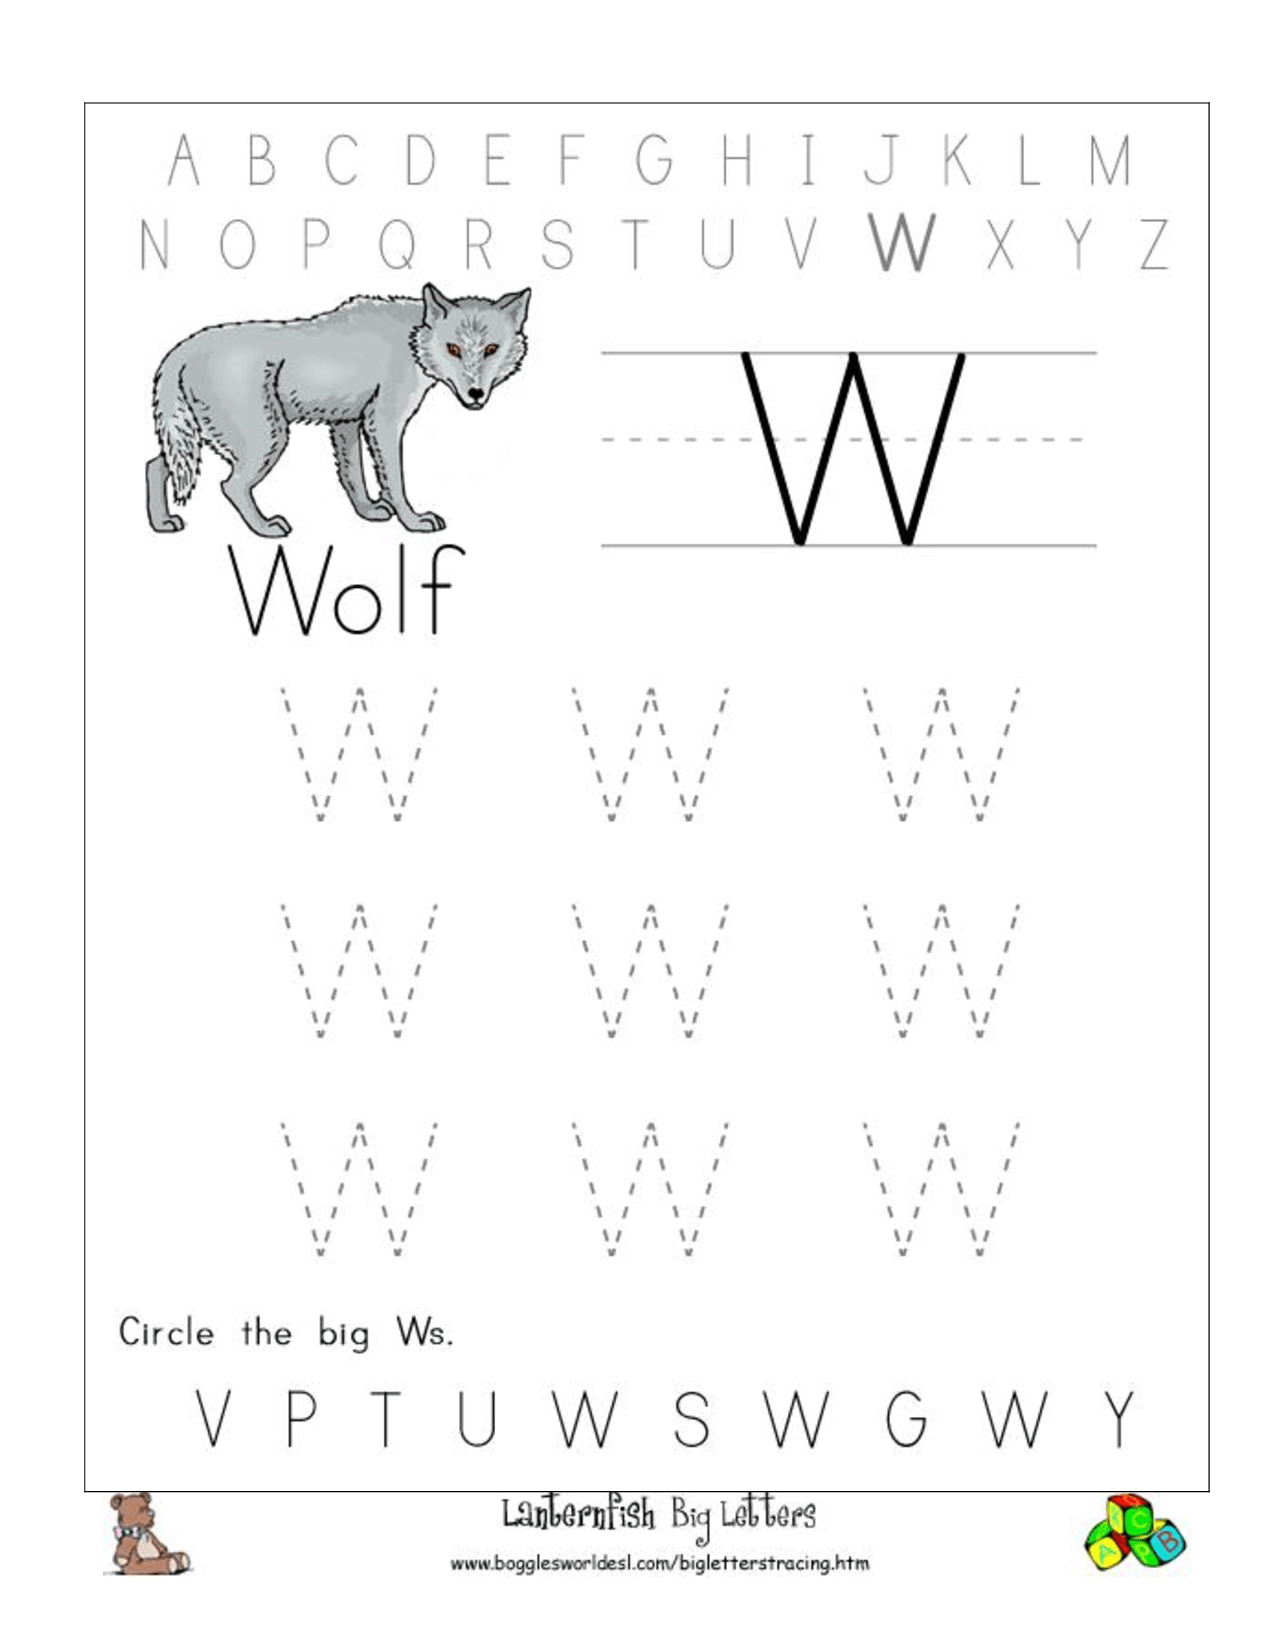 The Boy Who Cried Wolf Worksheet